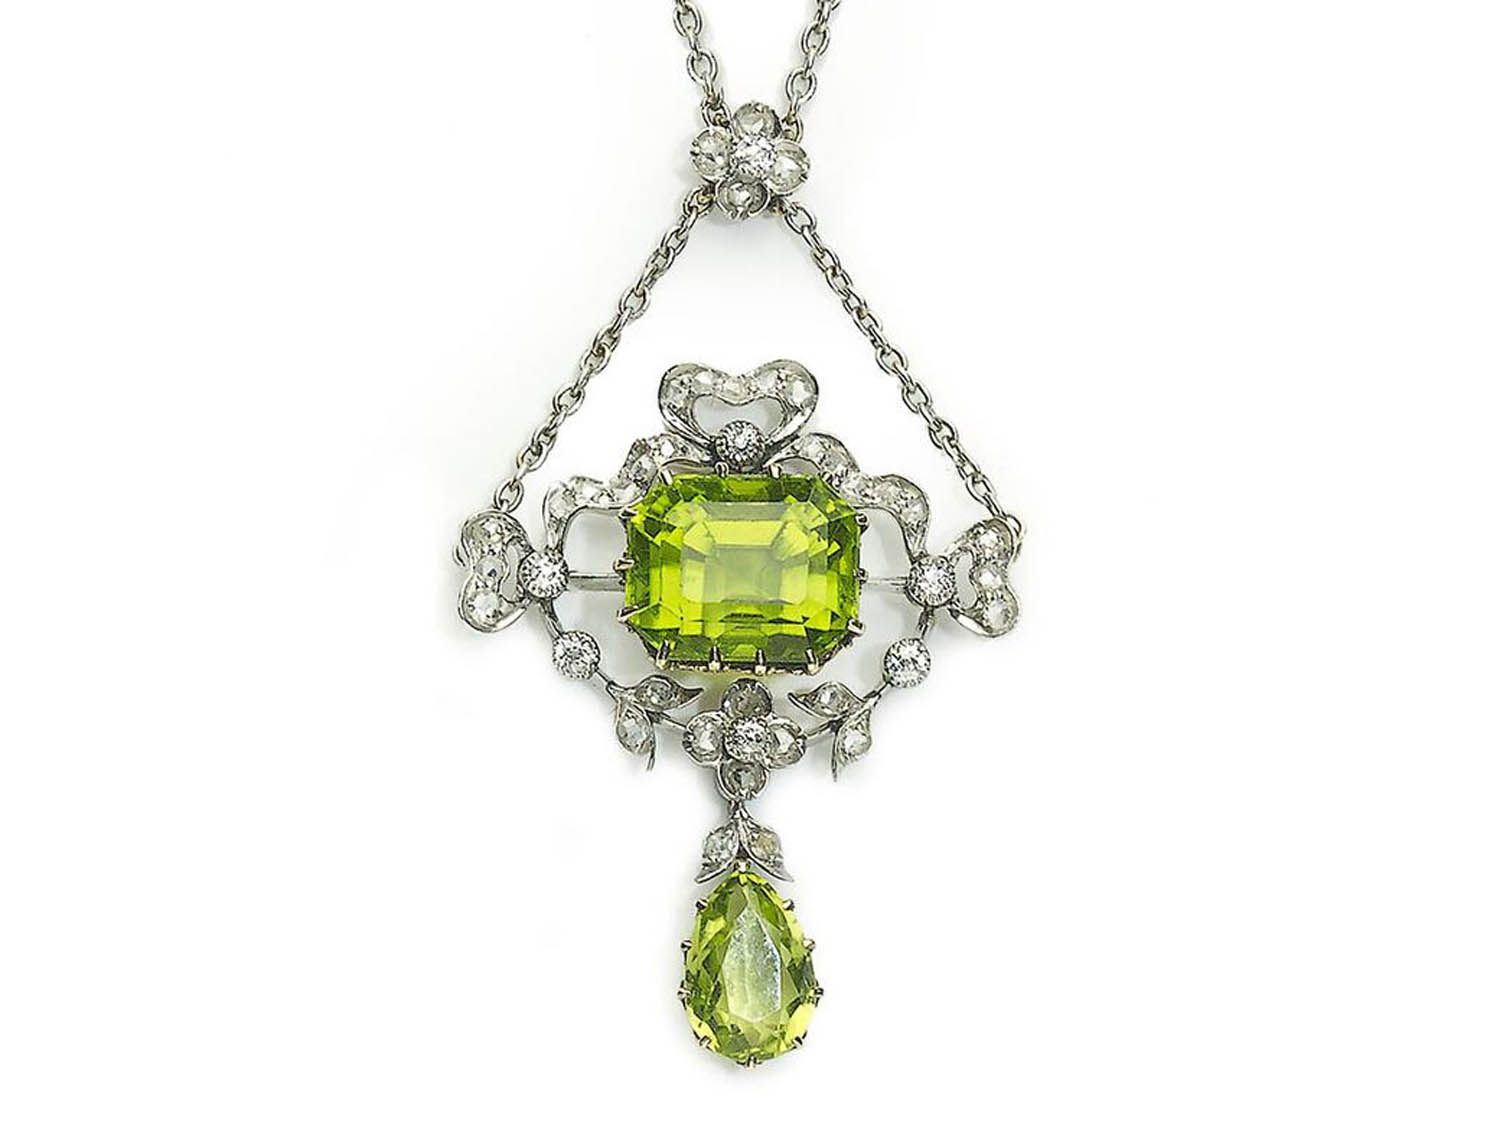 An edwardian peridot pendant set with an emeraldcut and a pear